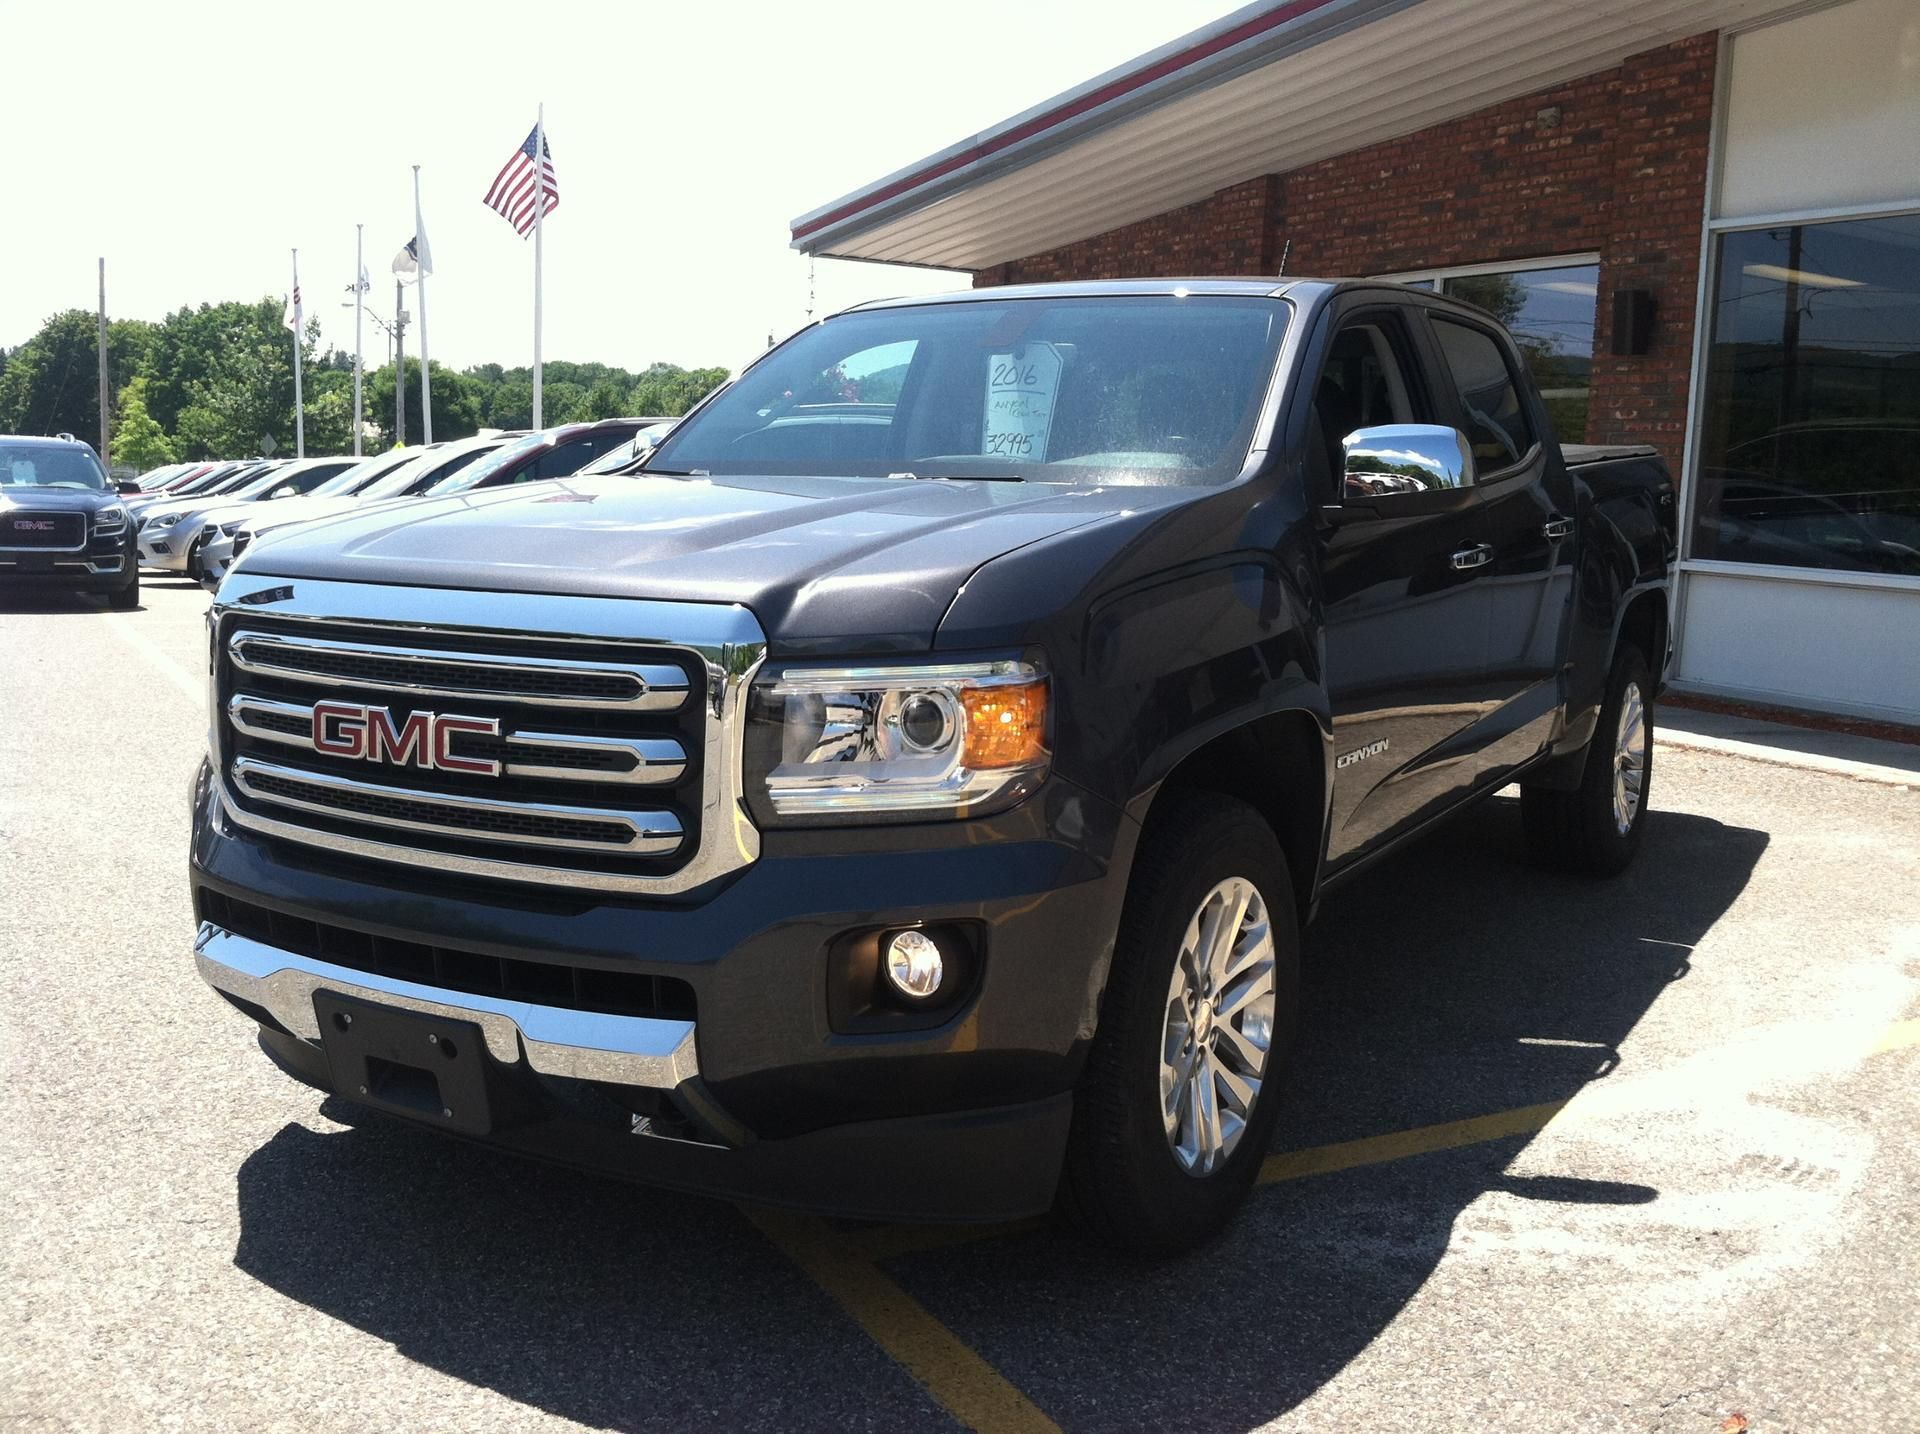 Used 4 Wheel Drive Cars For Sale Near Me Unique Adams Used Gmc Canyon Vehicles For Sale In 2020 4 Wheel Drive Cars Cars For Sale Vehicles